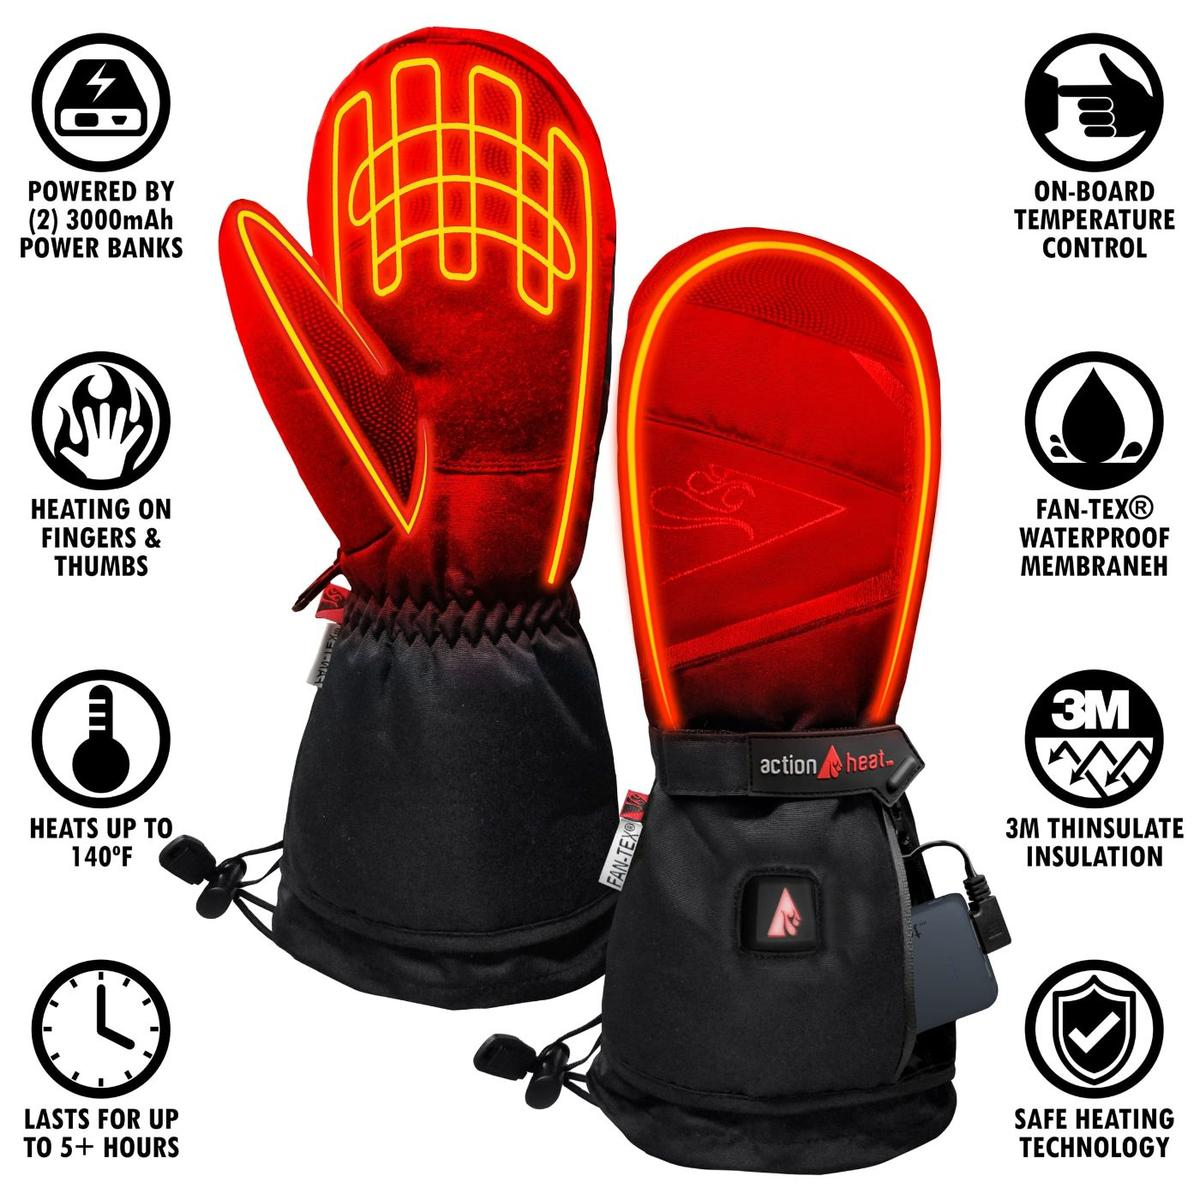 ActionHeat 5V Battery Heated Mittens - Info